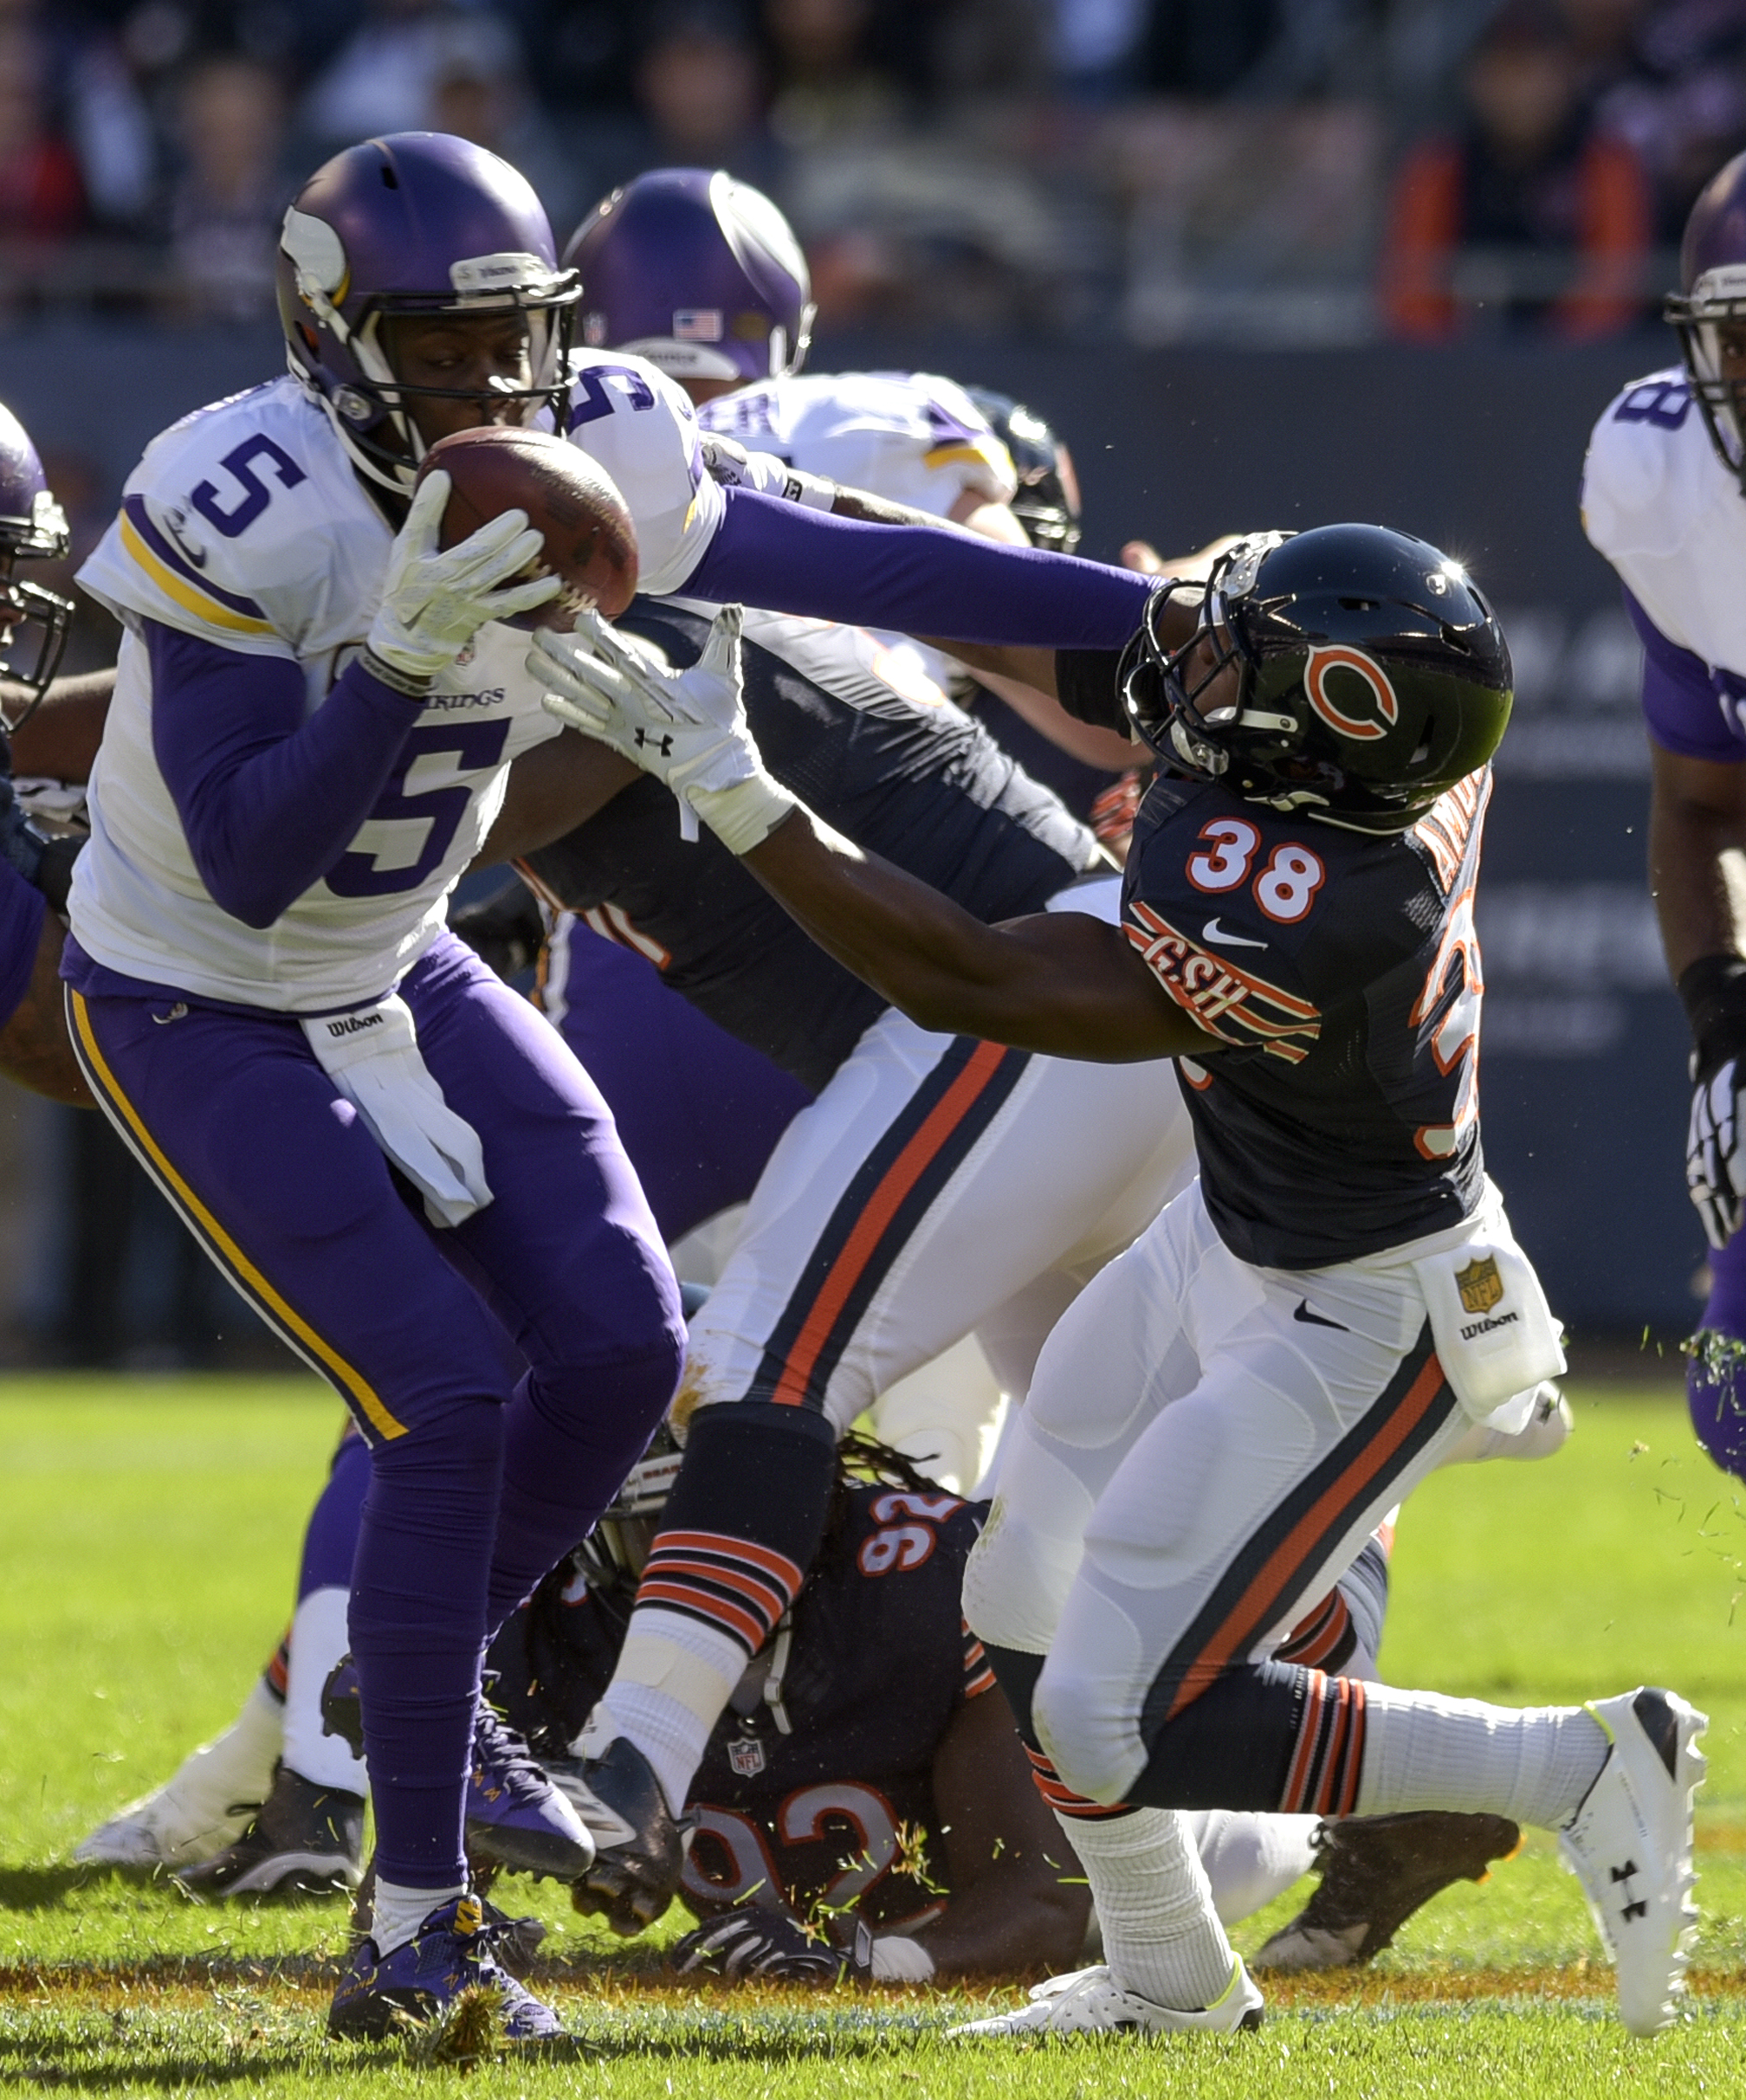 Minnesota Vikings quarterback Teddy Bridgewater (5) keeps the ball from Chicago Bears free safety Adrian Amos (38) during the first half of an NFL football game in Chicago, Sunday, Nov. 1, 2015. (Mark Black/Daily Herald via AP) MANDATORY CREDIT; MAGAZINES